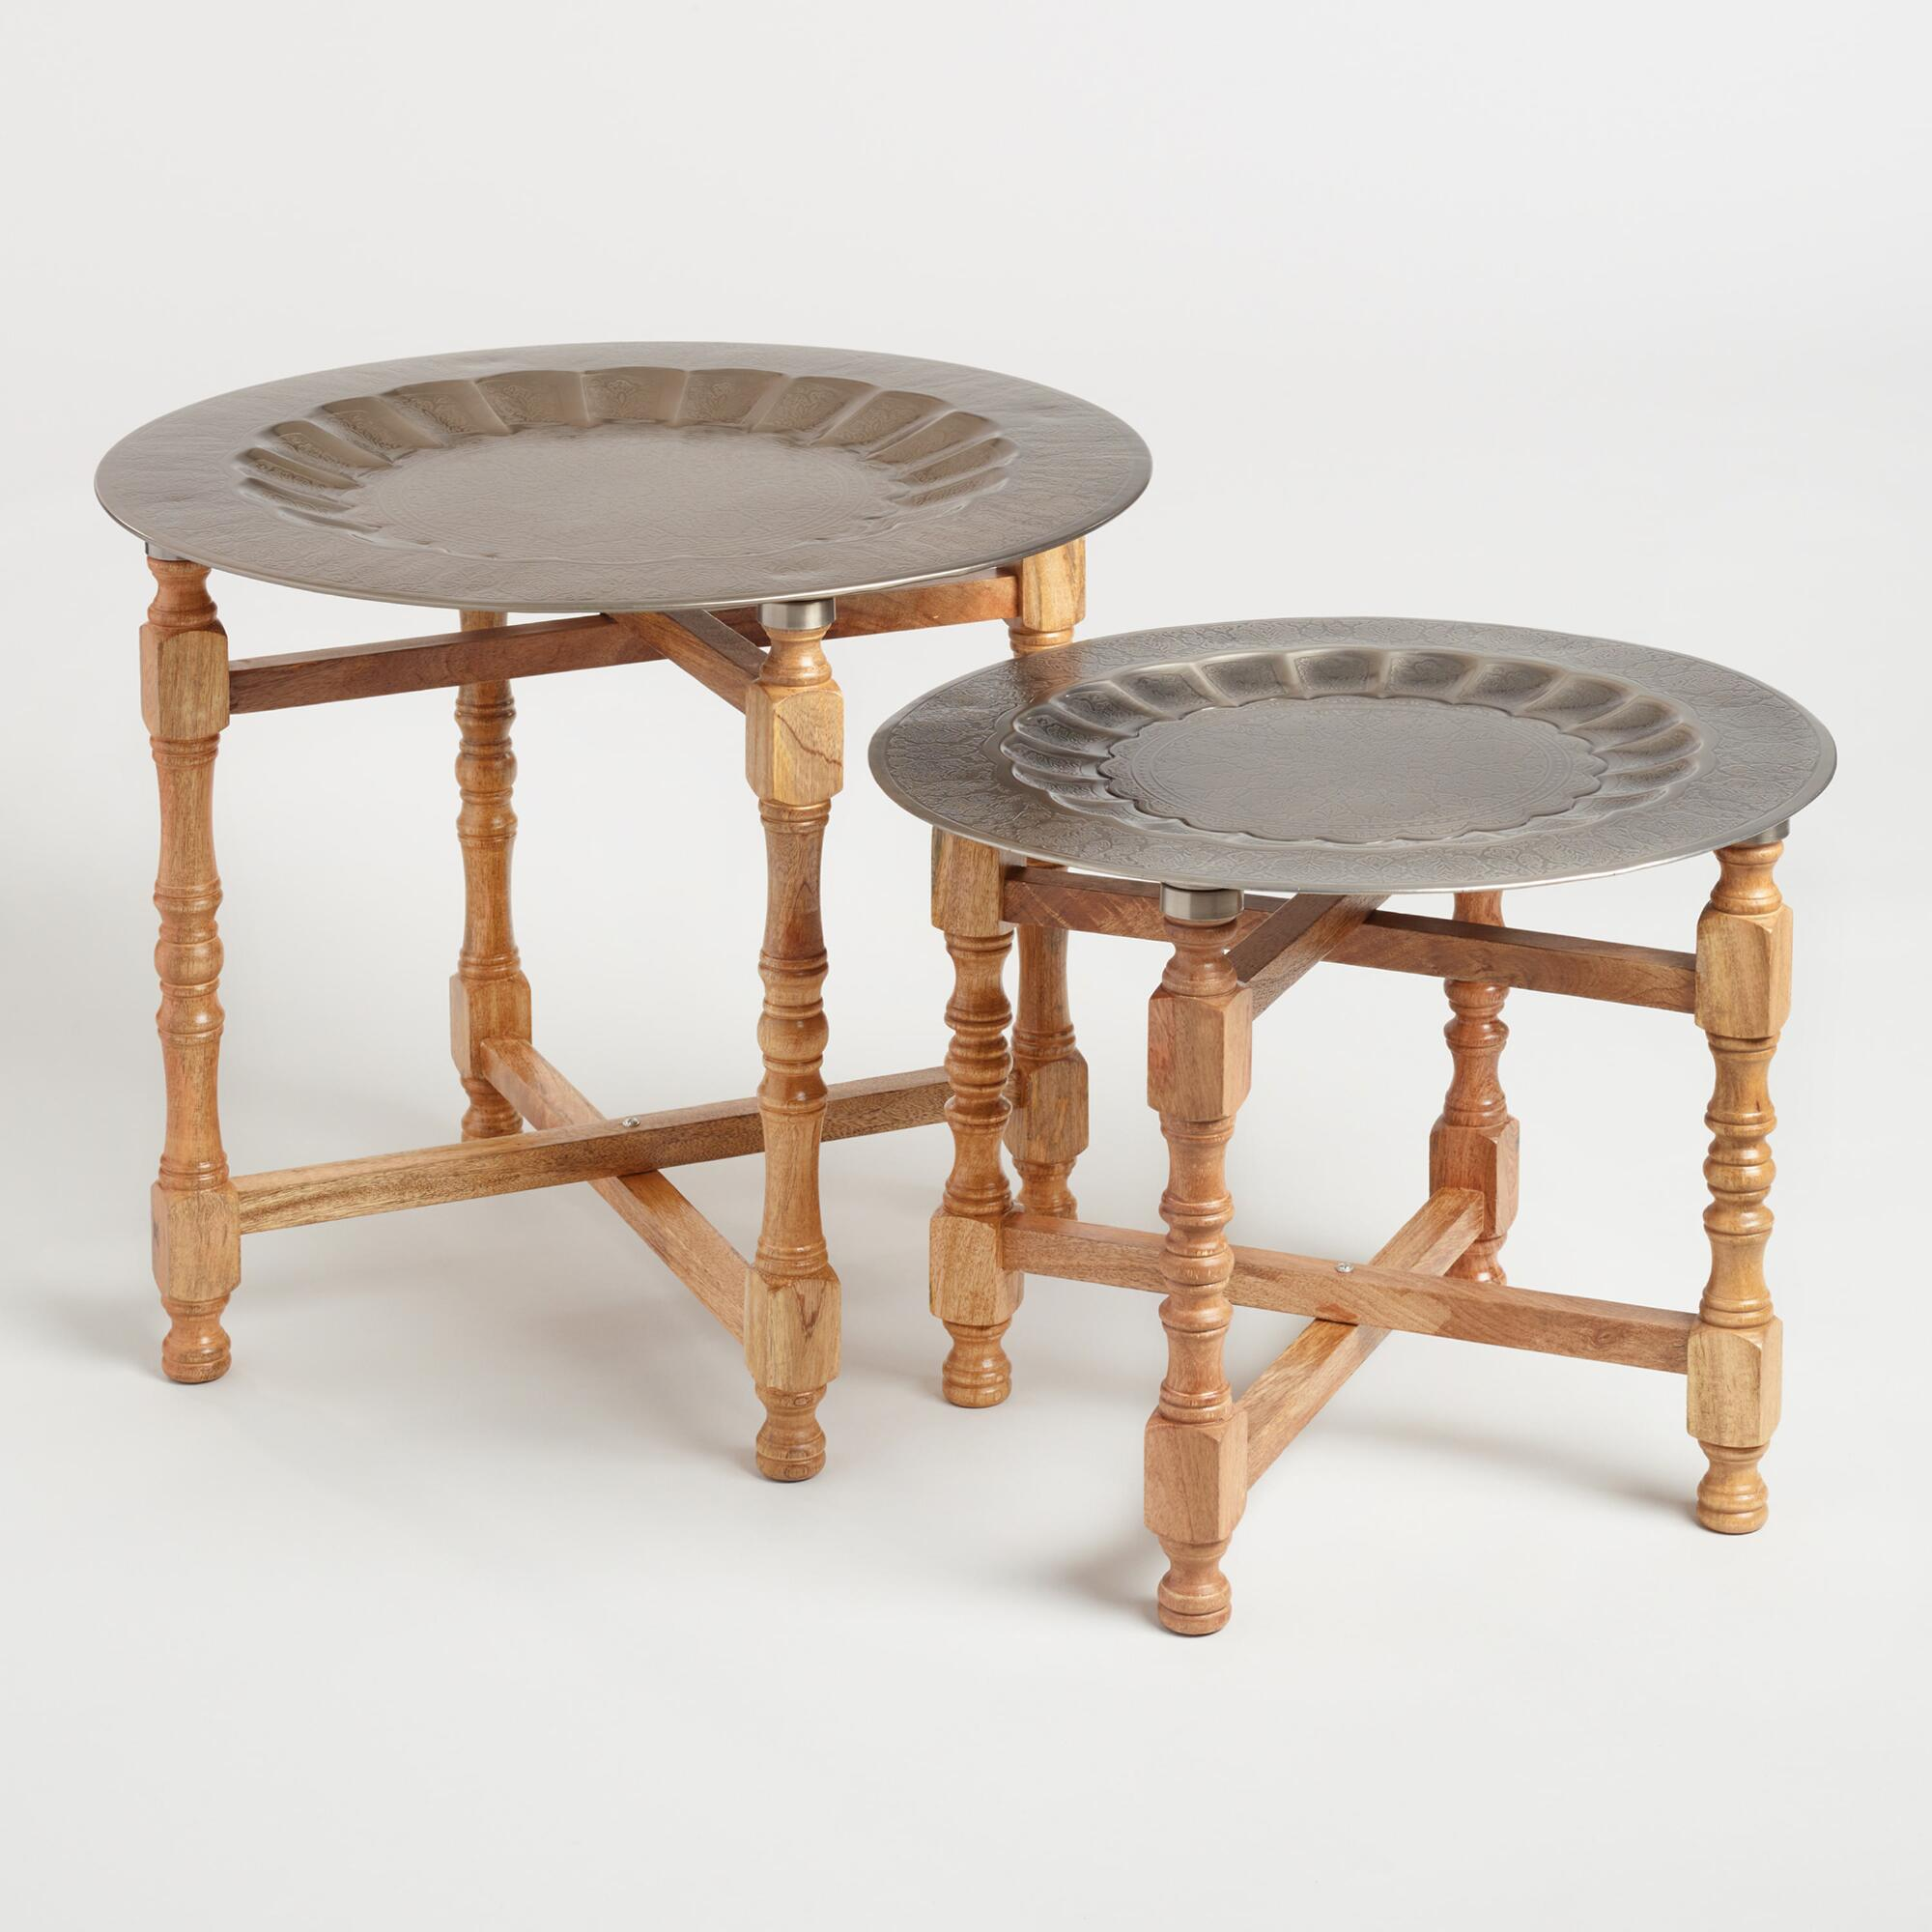 Coffee tables affordable end tables world market metal and wood arya table set of 2 geotapseo Image collections